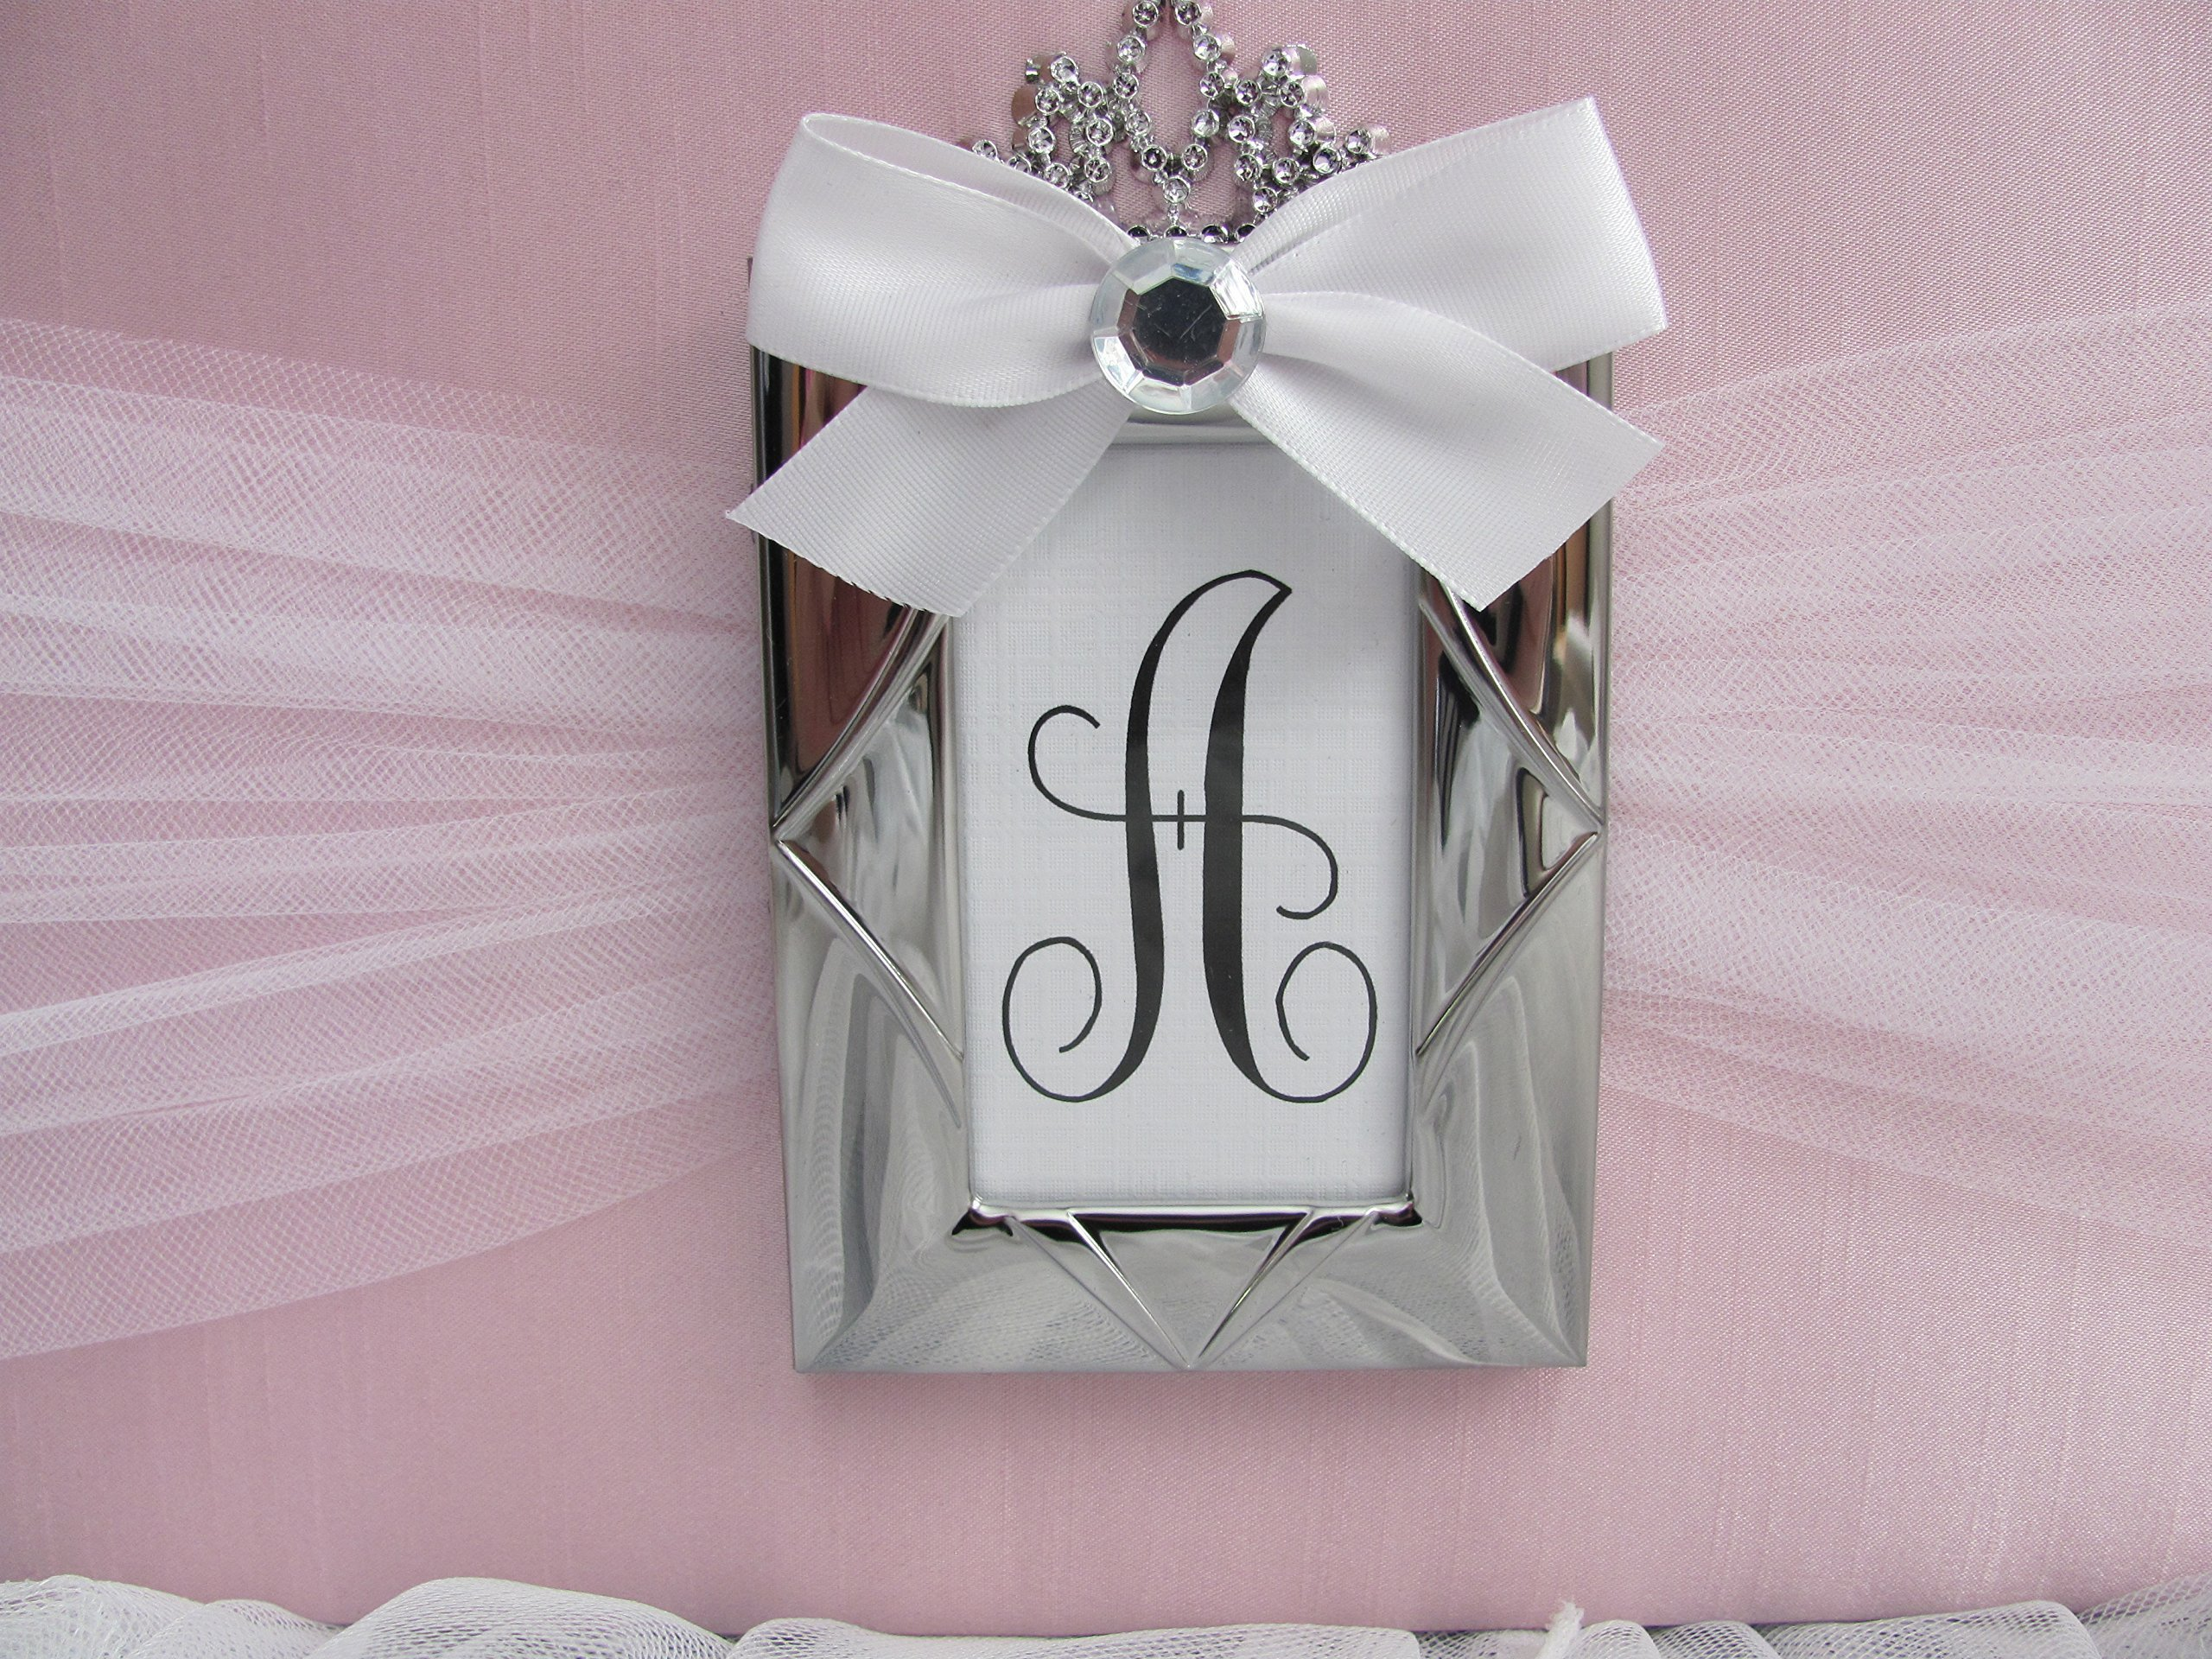 Princess Bed Canopy Crown Valance French Paris Light Pink Gray Silver Upholstered Personalized monogram with tiara and rhinestone